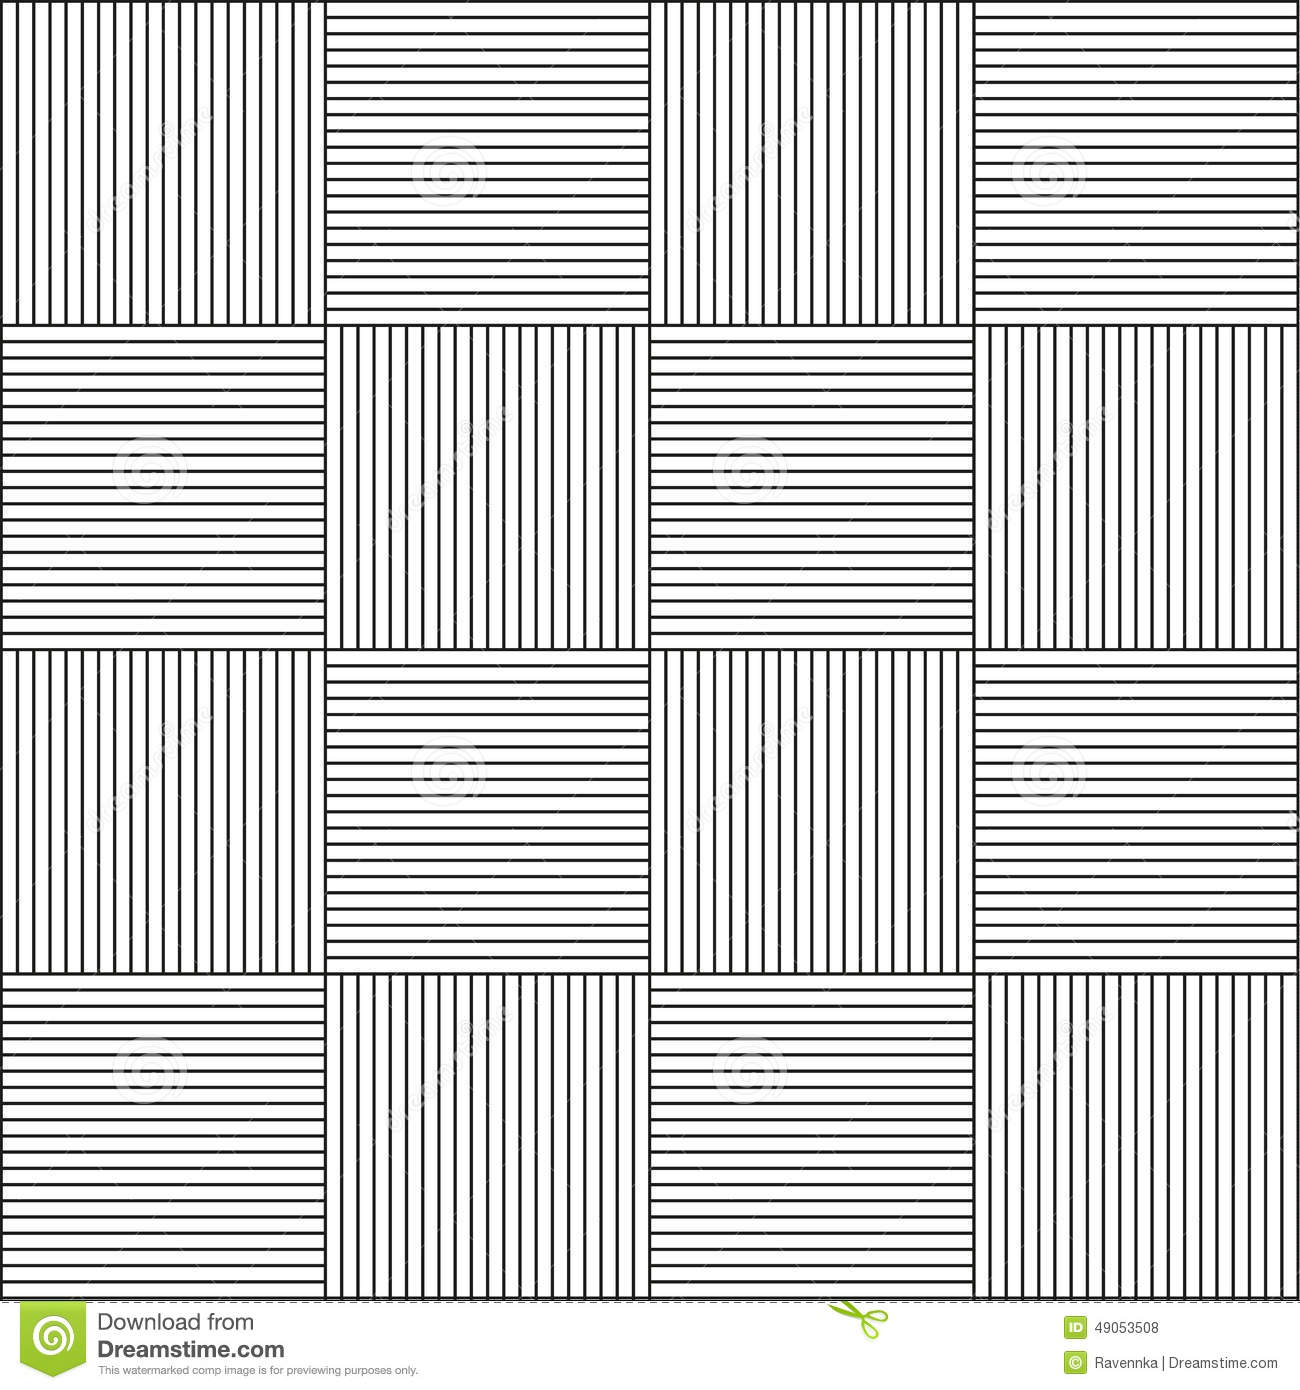 Seamless Horizontal And Vertical Line Pattern Stock Vector